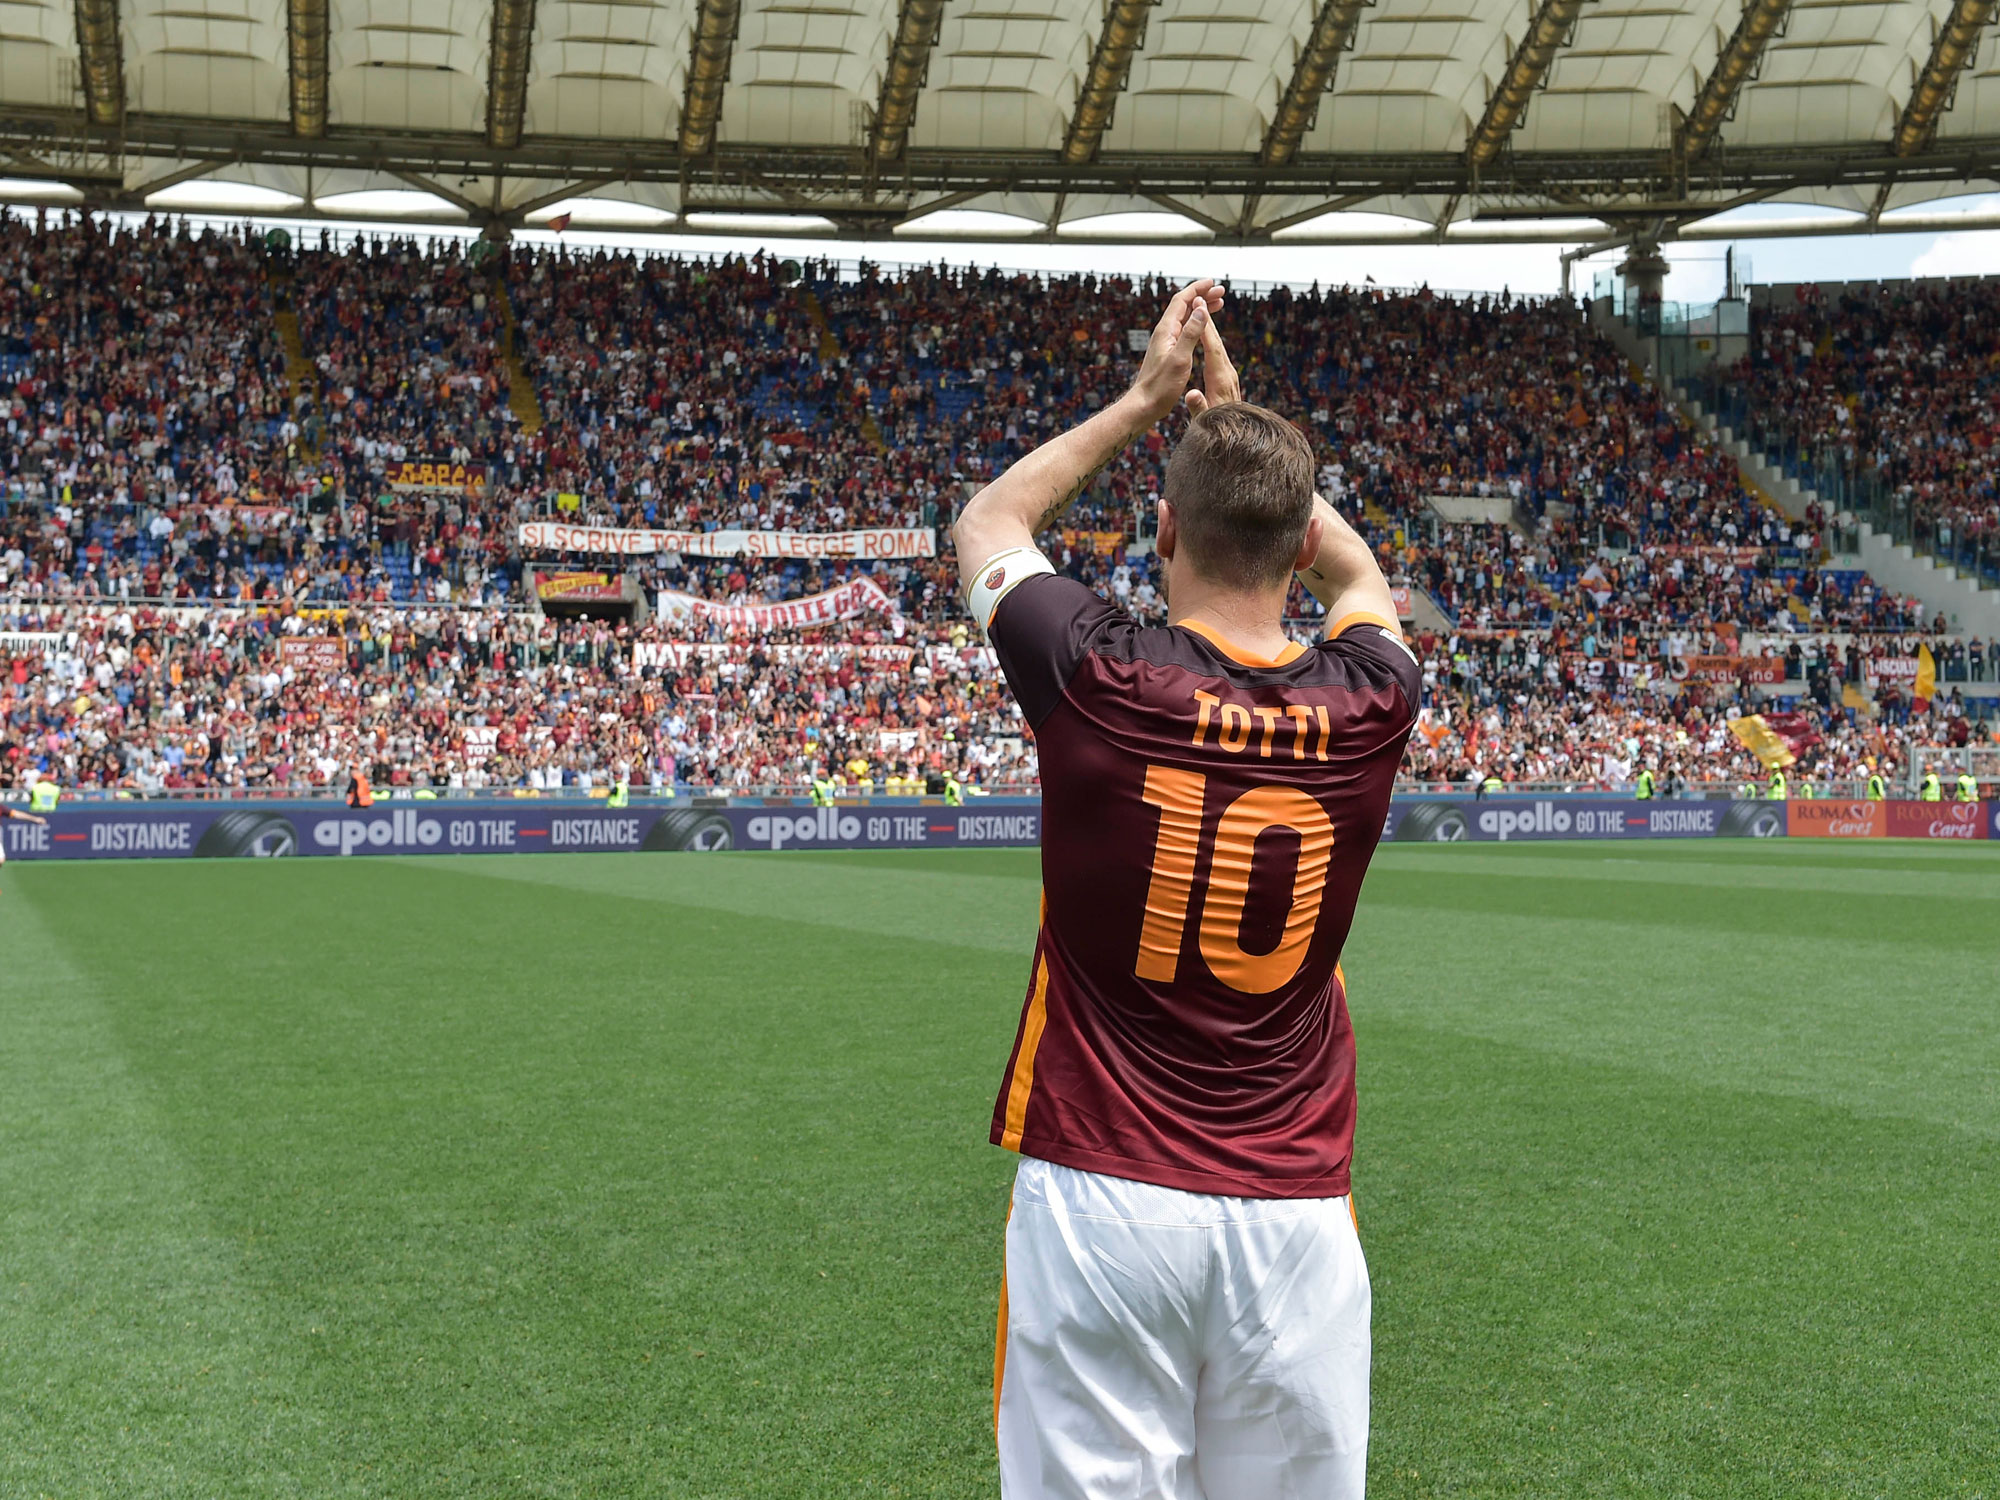 Francesco Totti has spent his entire career with AS Roma